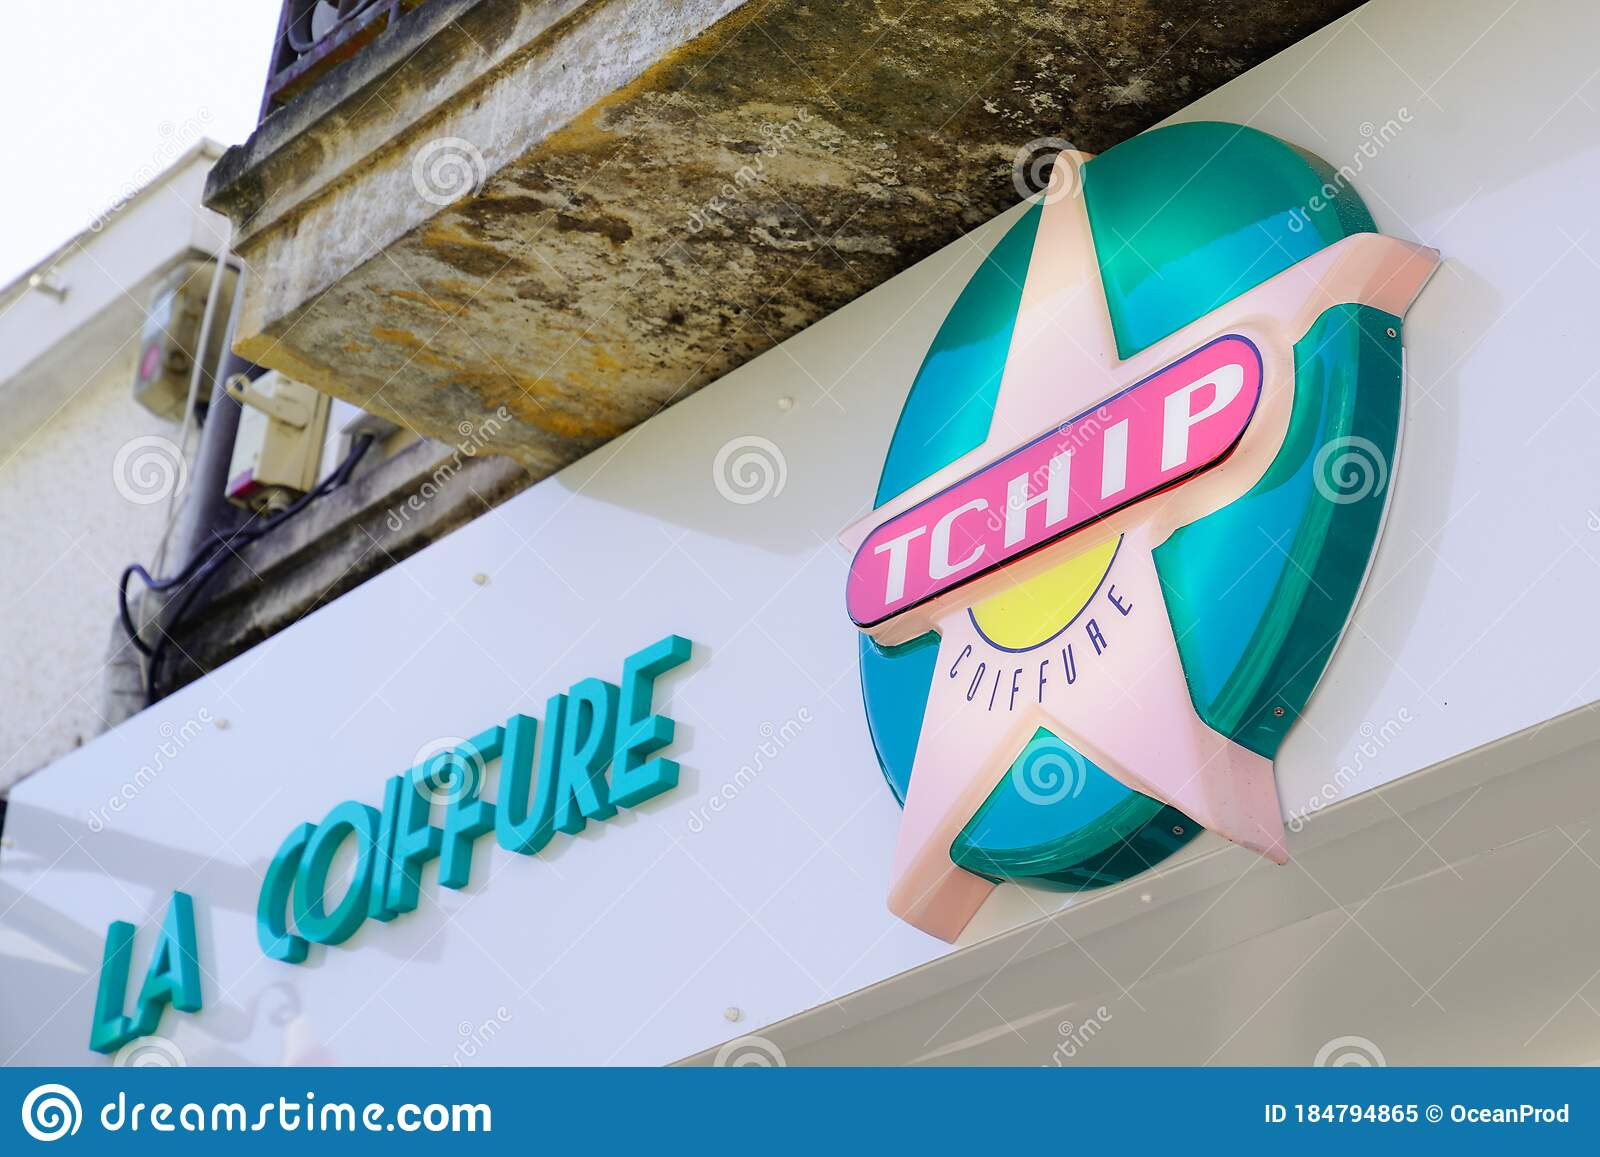 Coiffure Logo Photos Free Royalty Free Stock Photos From Dreamstime